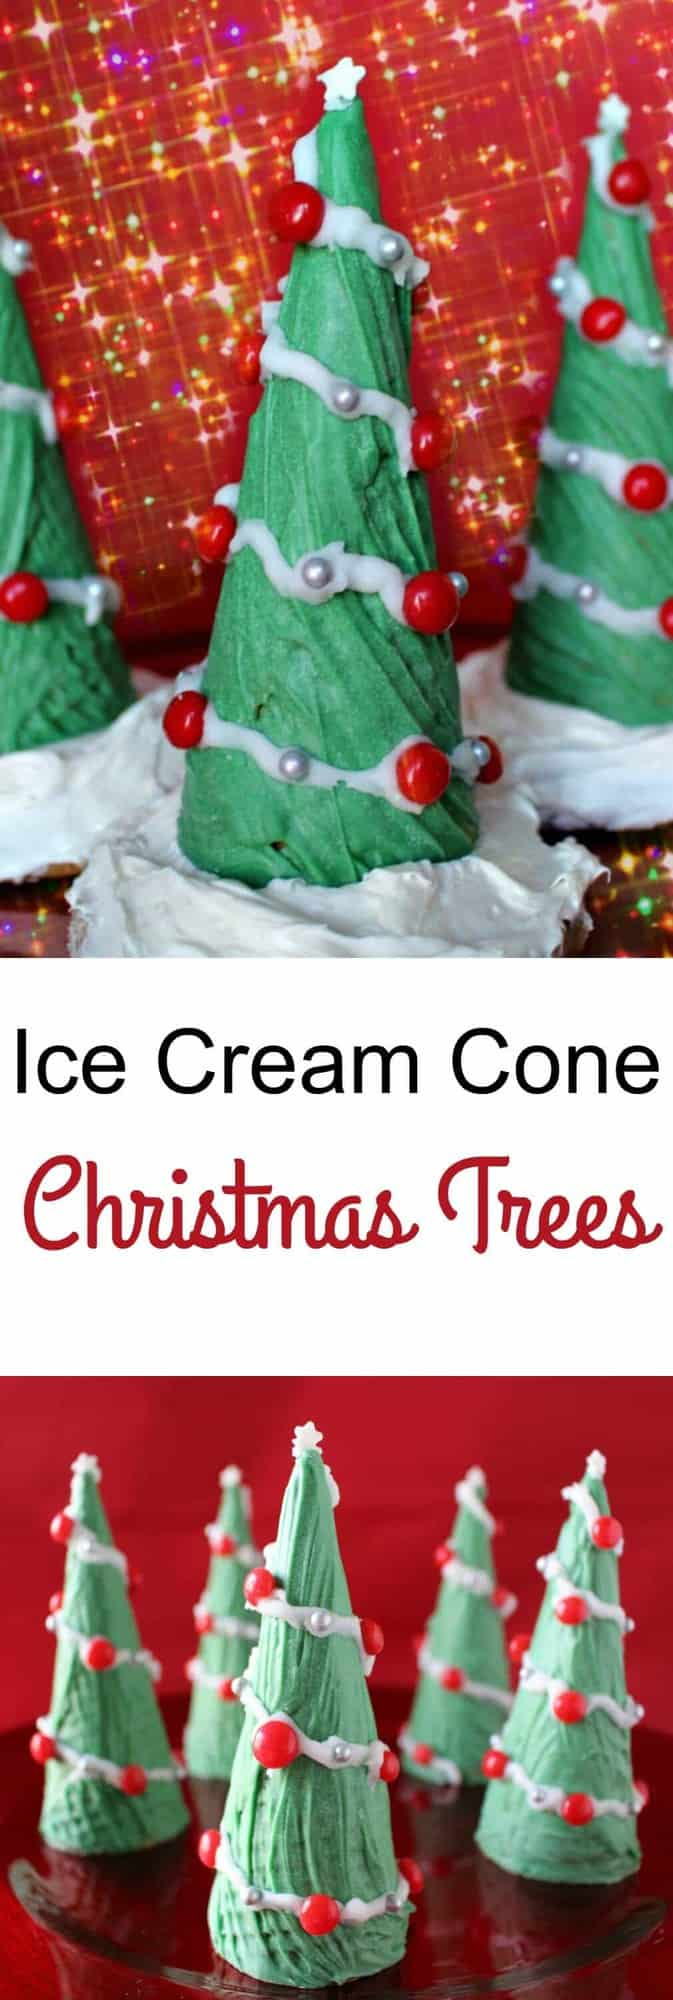 ice cream cone christmas trees a wonderful holiday treat